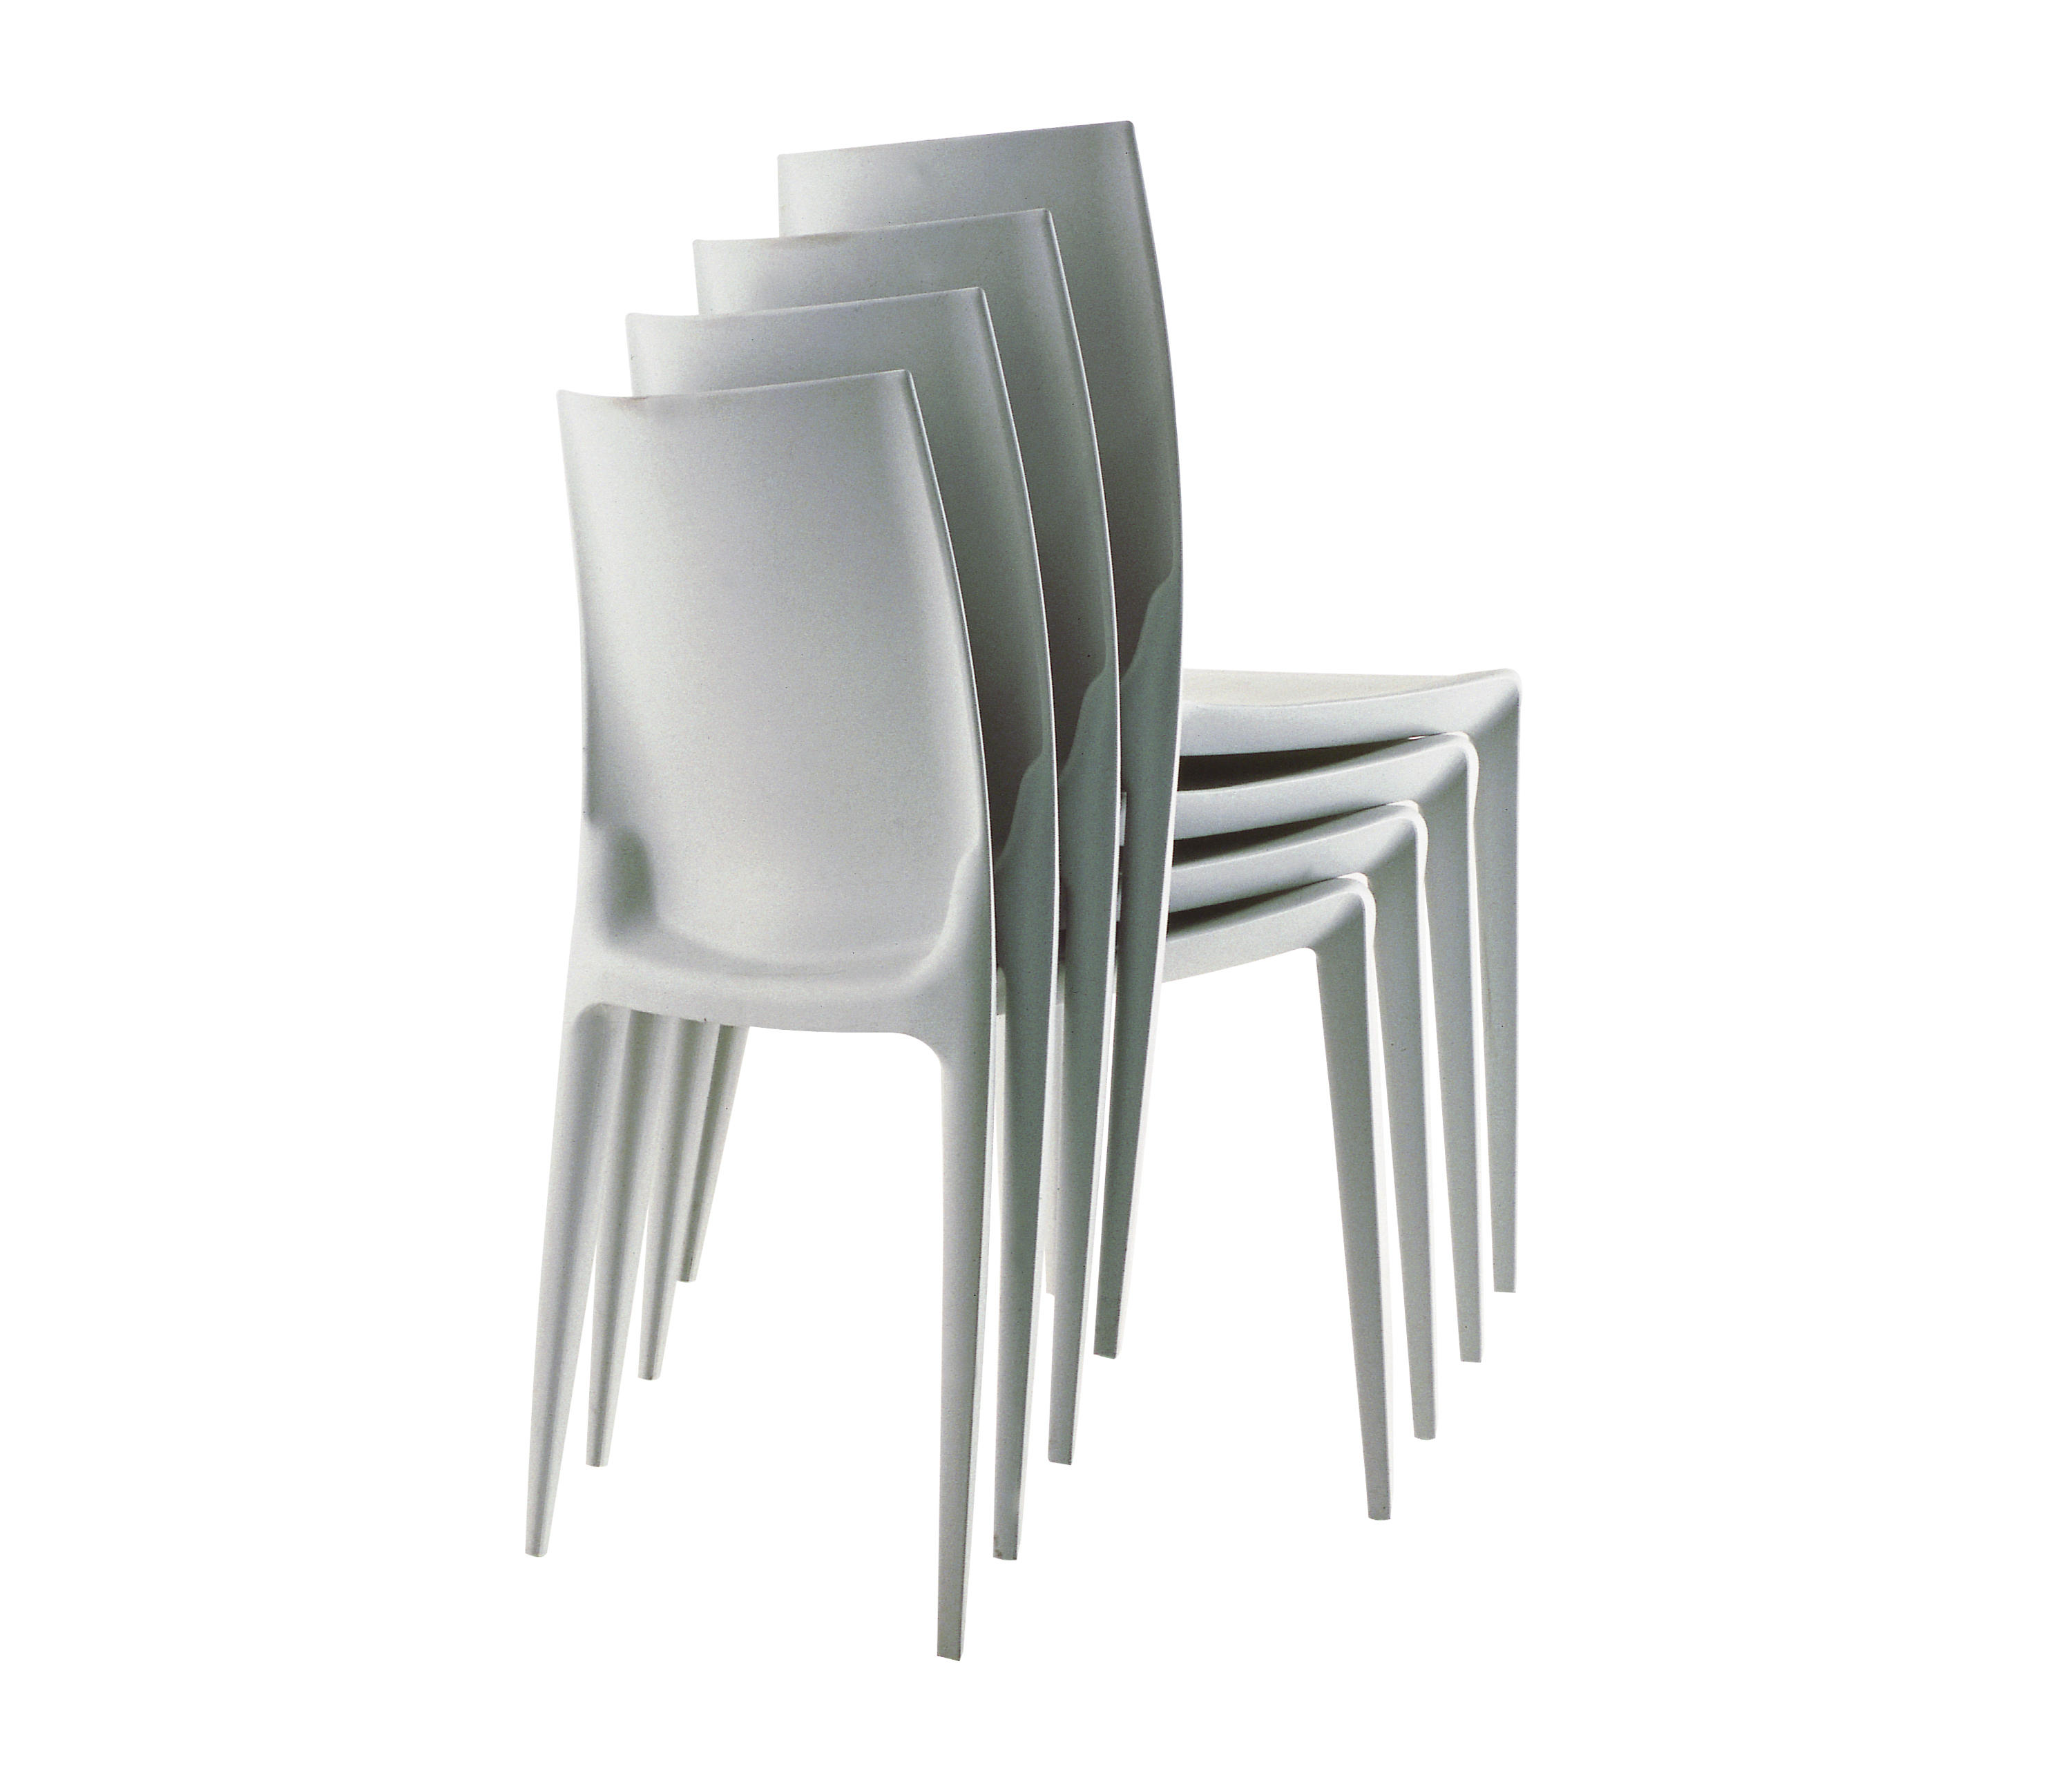 THE BELLINI CHAIR MODEL 1000